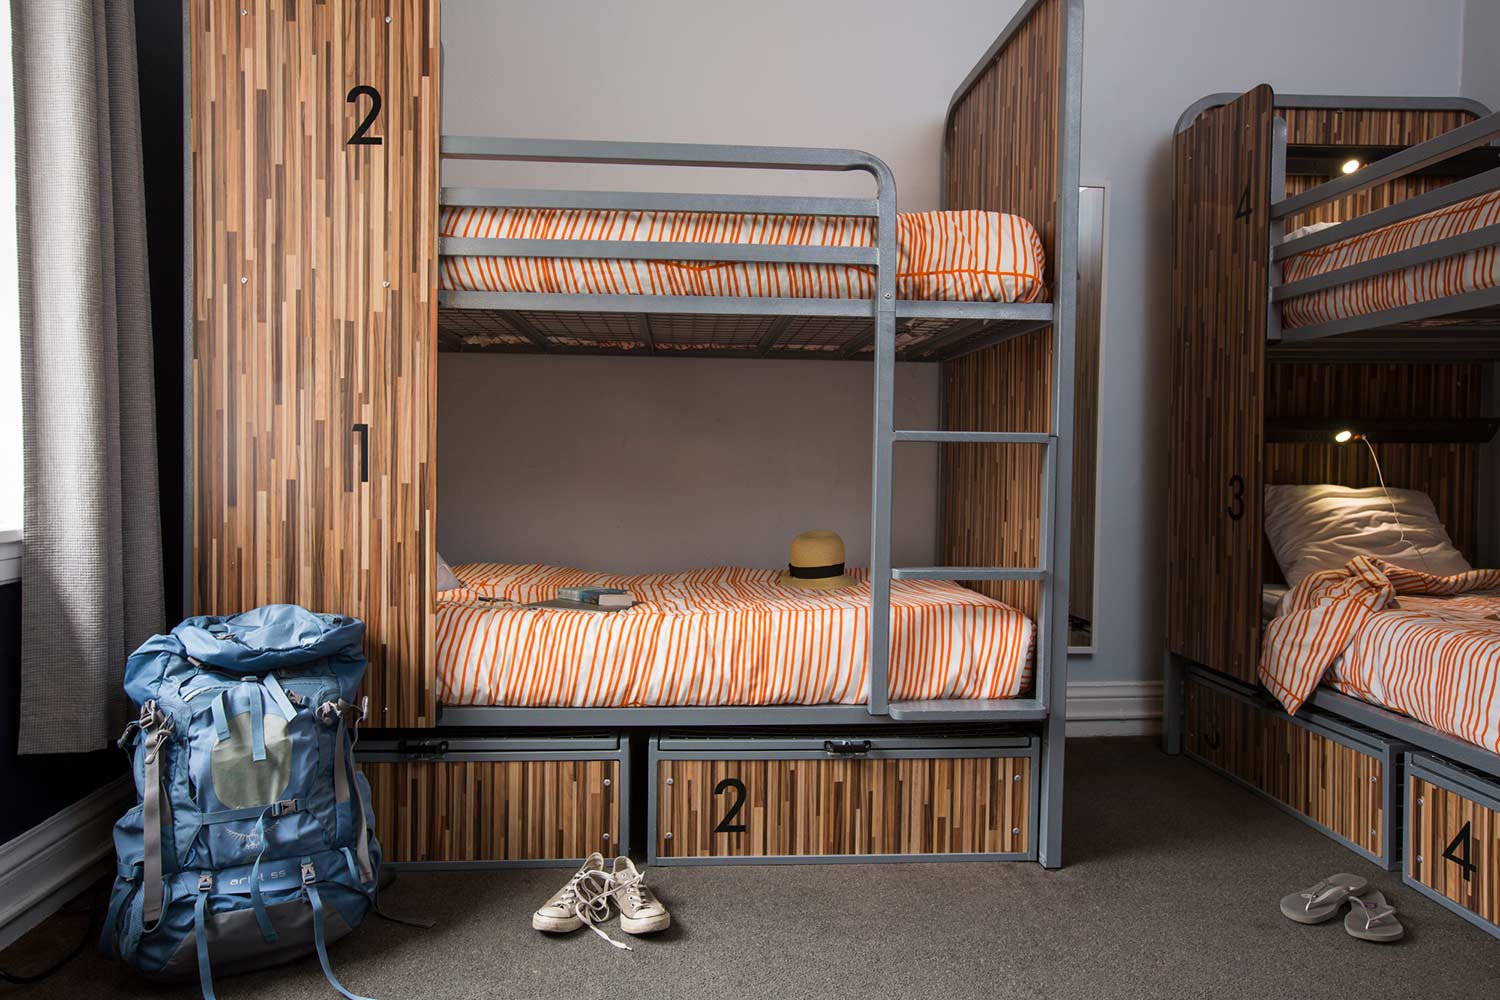 Room view with bunk beds, backpack, and shoes.